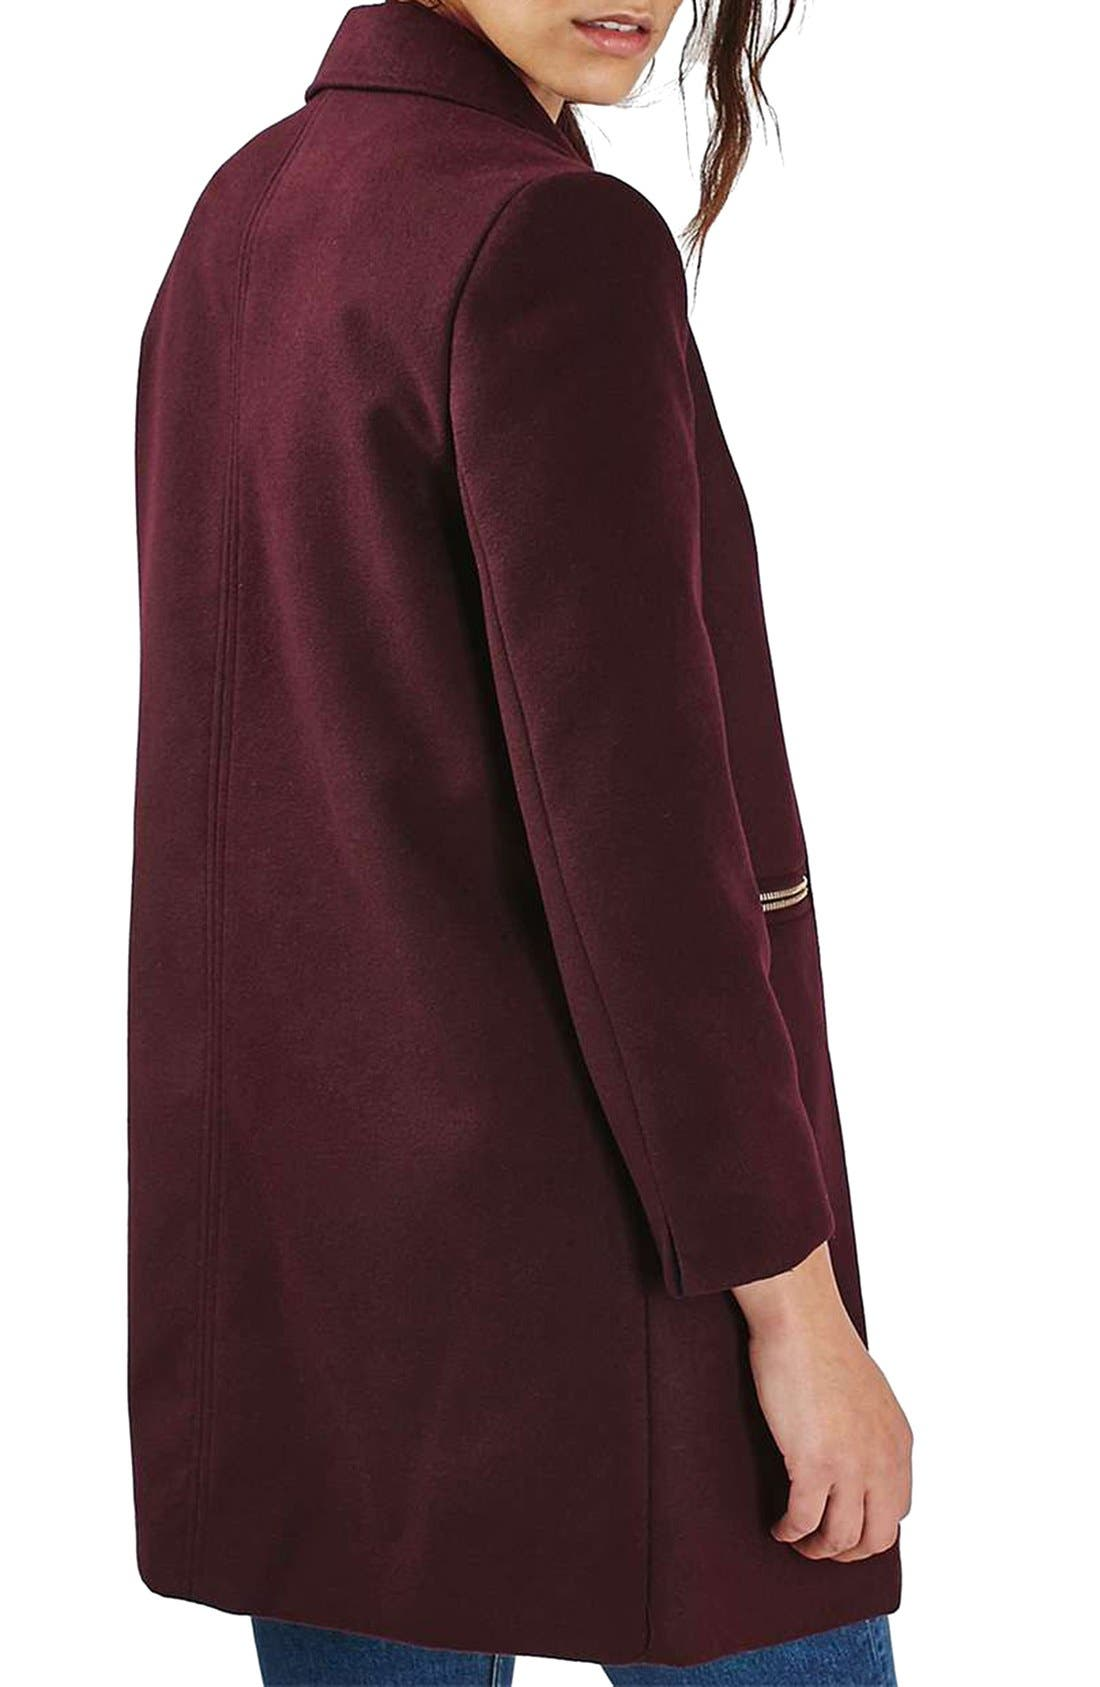 'Meg' Zip Pocket Coat,                             Alternate thumbnail 3, color,                             Burgundy